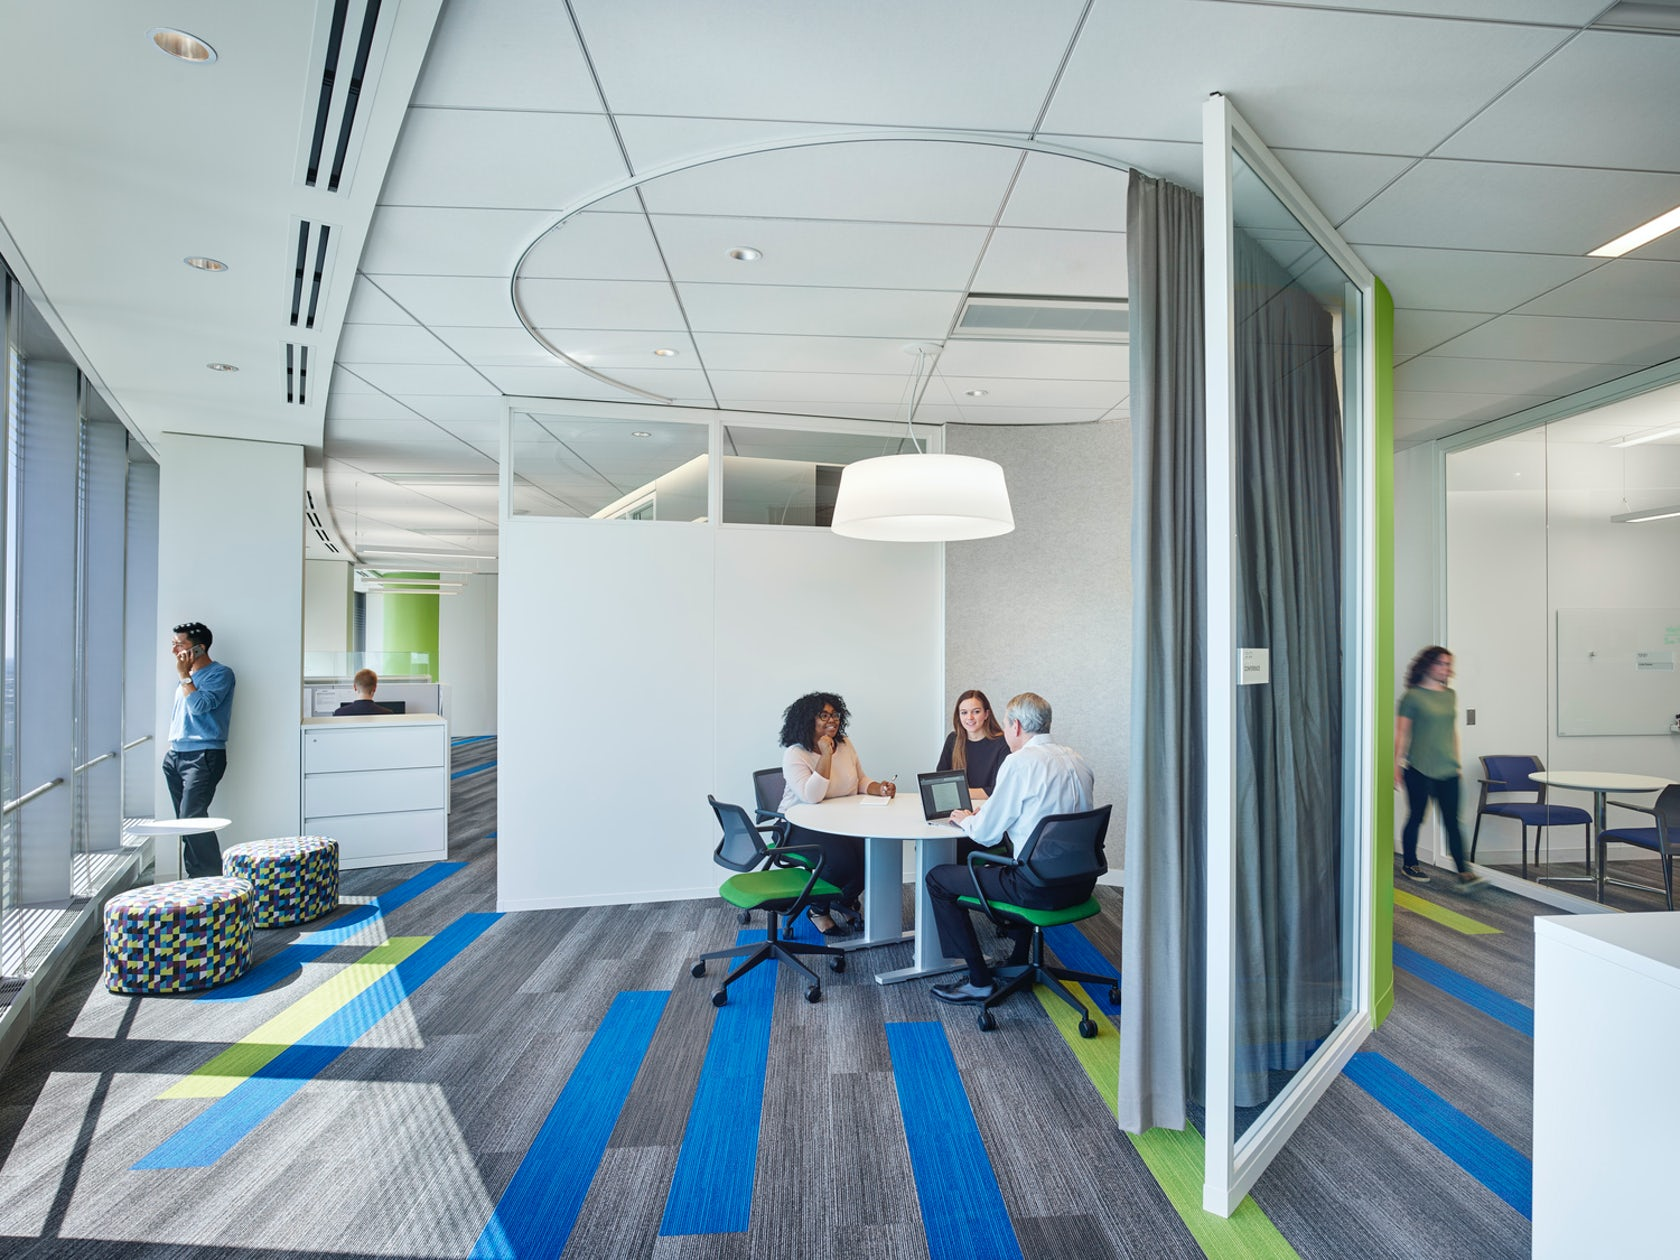 CHOP, Roberts Center for Pediatric Research on Architizer